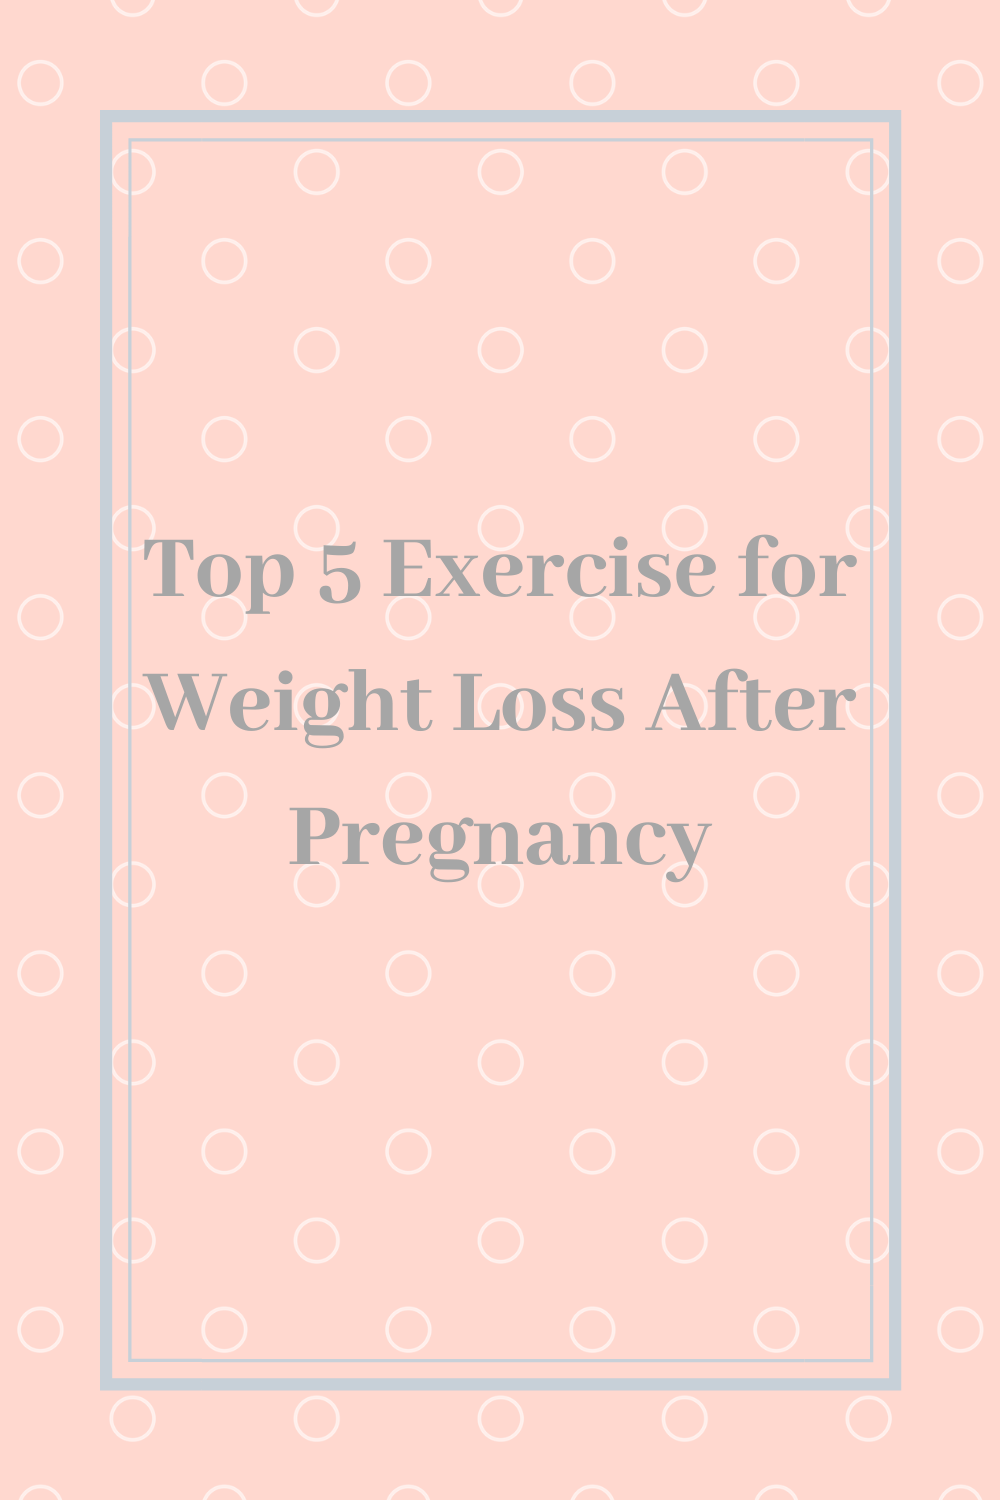 5 exercises to help lose weight after pregnancy